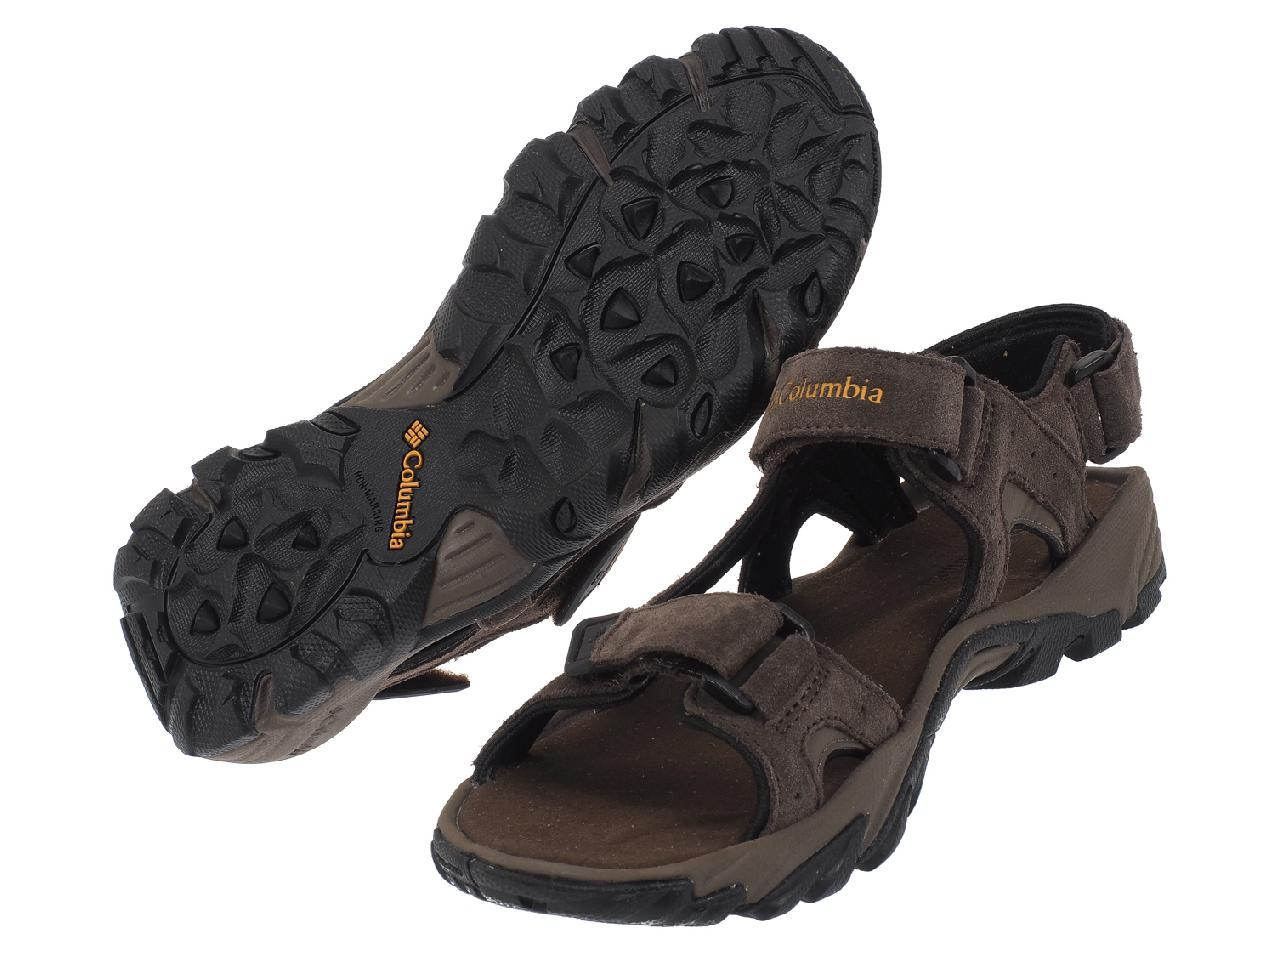 Sandals-Columbia-Santiam-3-Strap-Brown-44903-New thumbnail 4